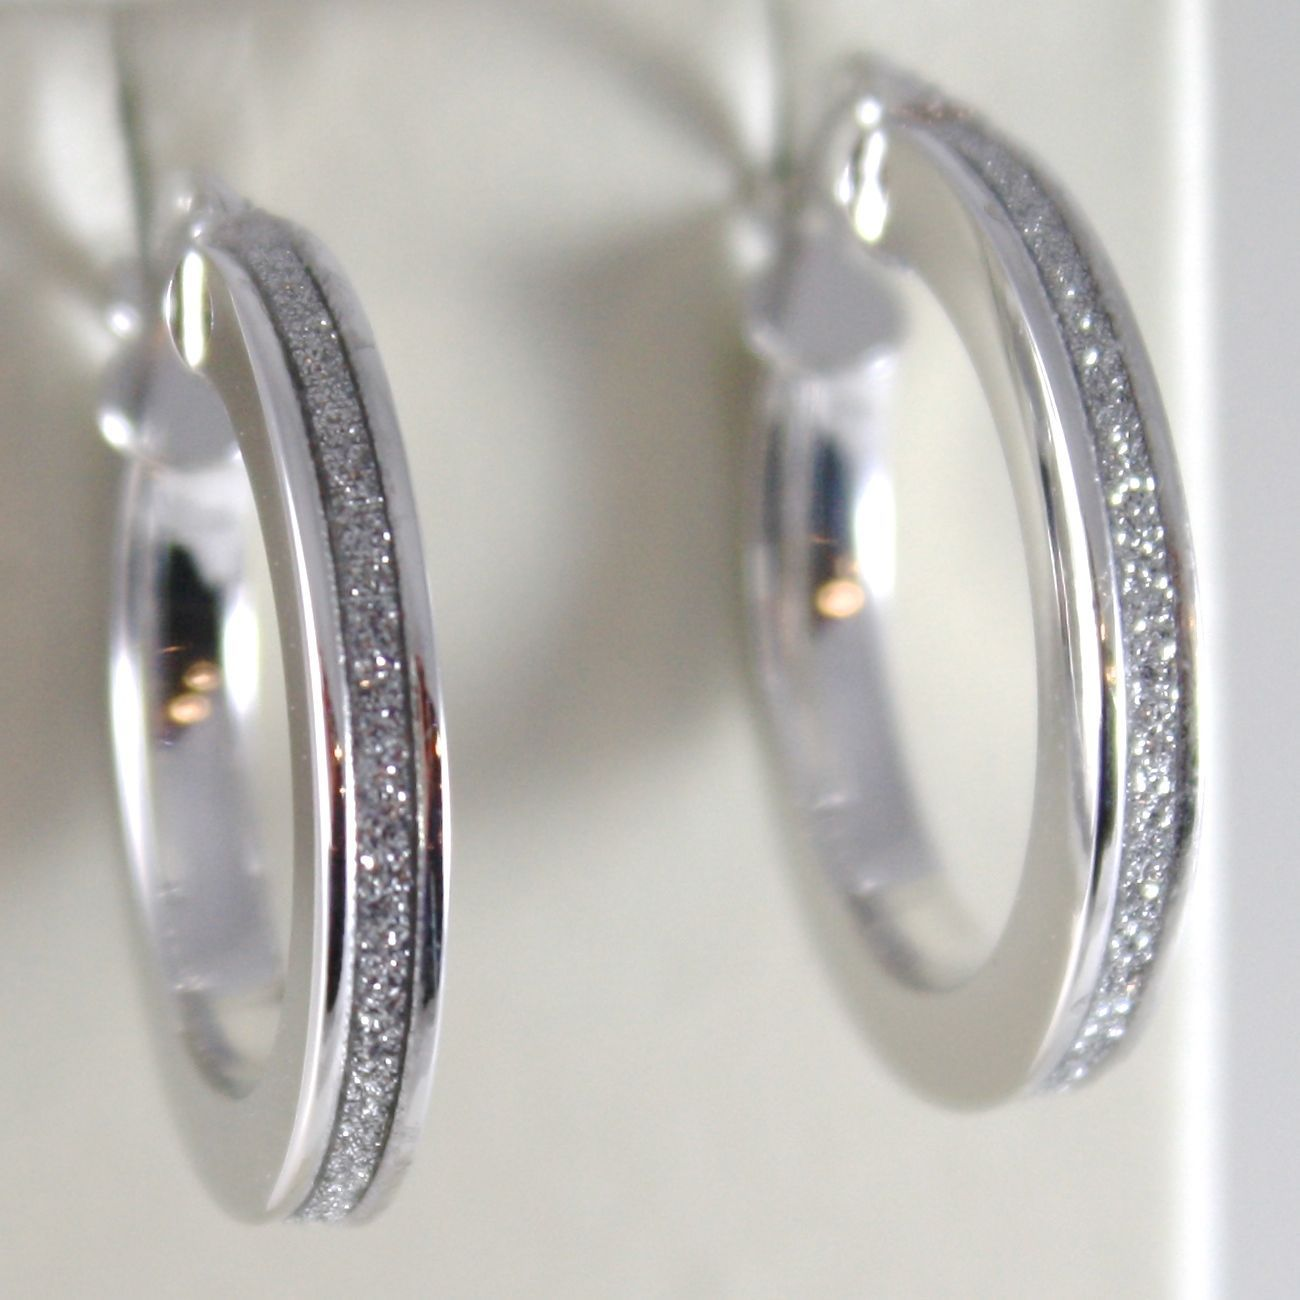 WHITE GOLD EARRINGS 750 18K CIRCLE, DIAMETER 2.2 CM, EFFECT GLITTER